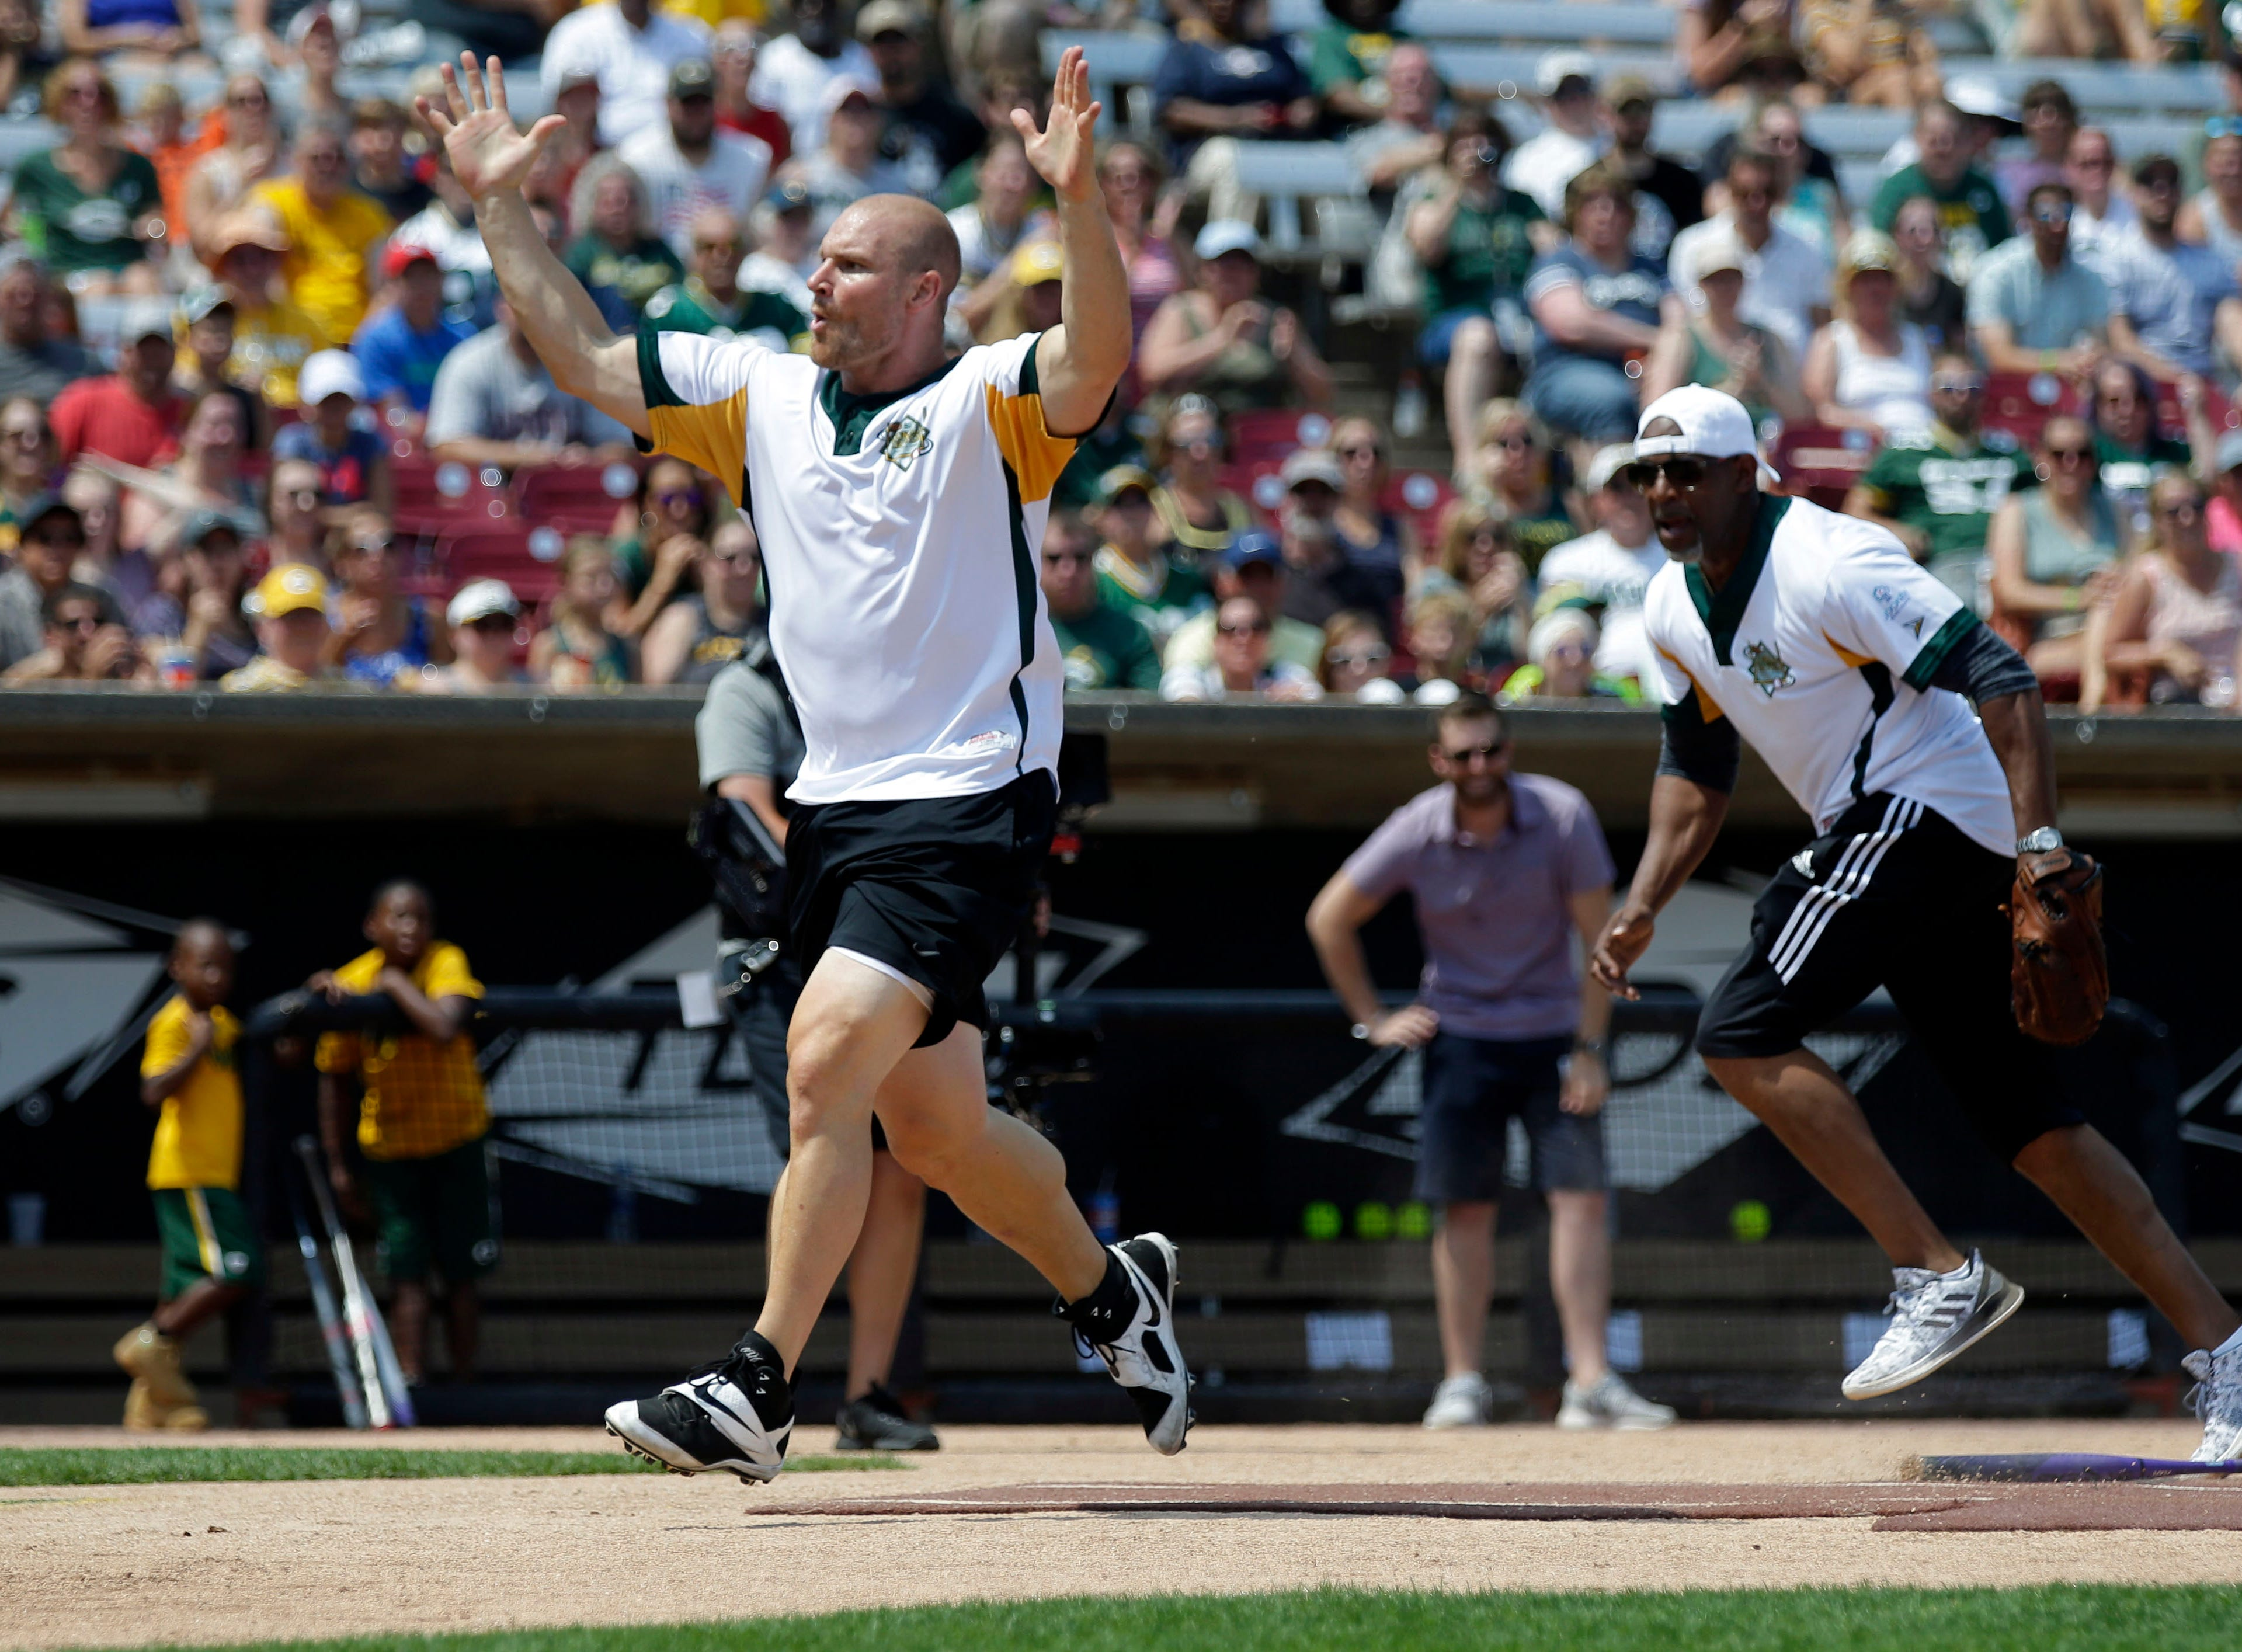 Brady Poppinga celebrates a run as Donald Driver and a few of his friends gather for a charity softball game Sunday, August 5, 2018, at Neuroscience Group Field at Fox Cities Stadium in Grand Chute, Wis.